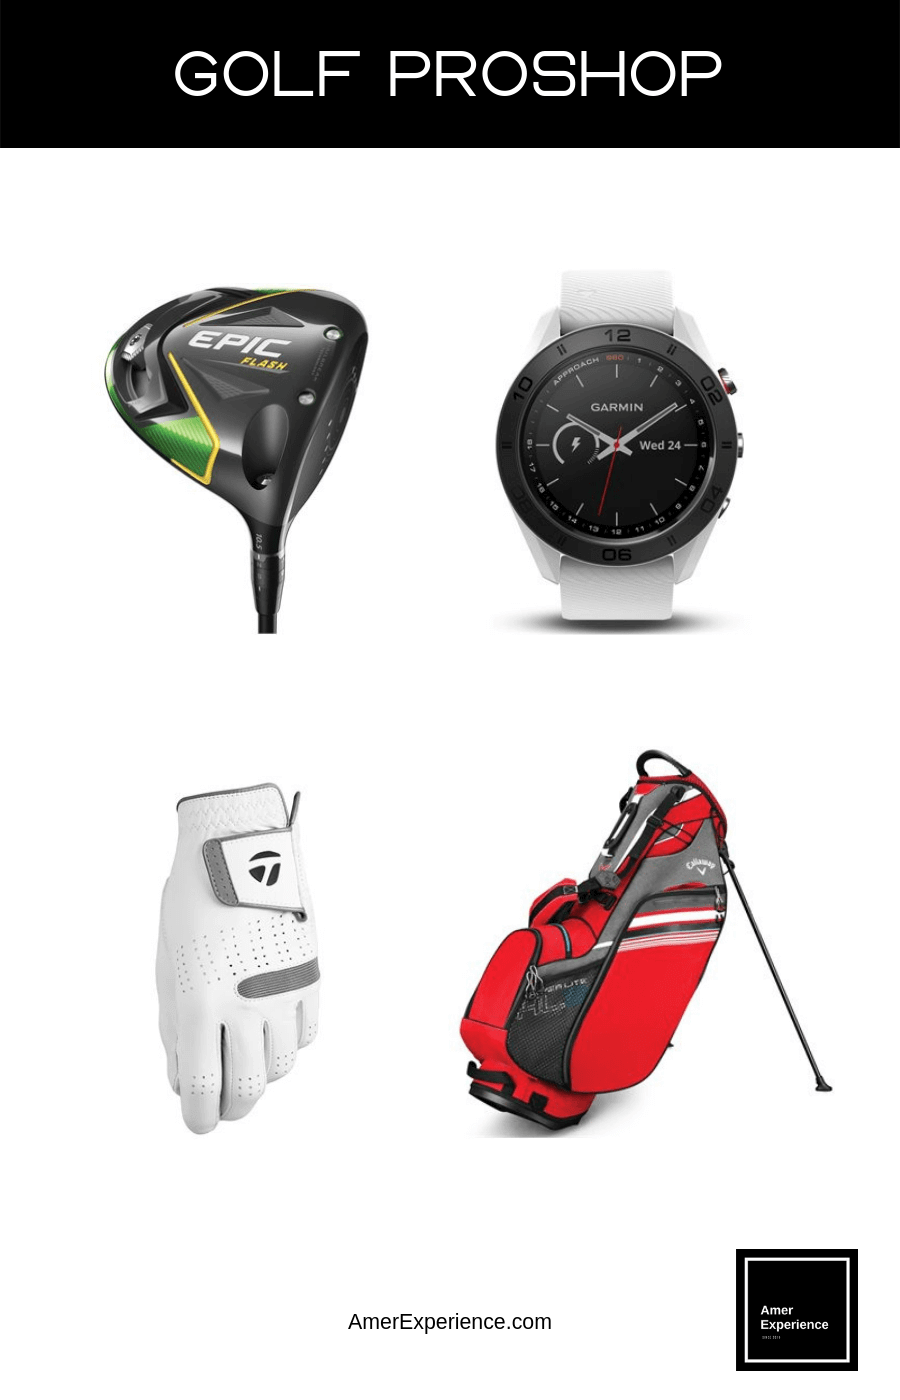 New and Used golf equipment for sale